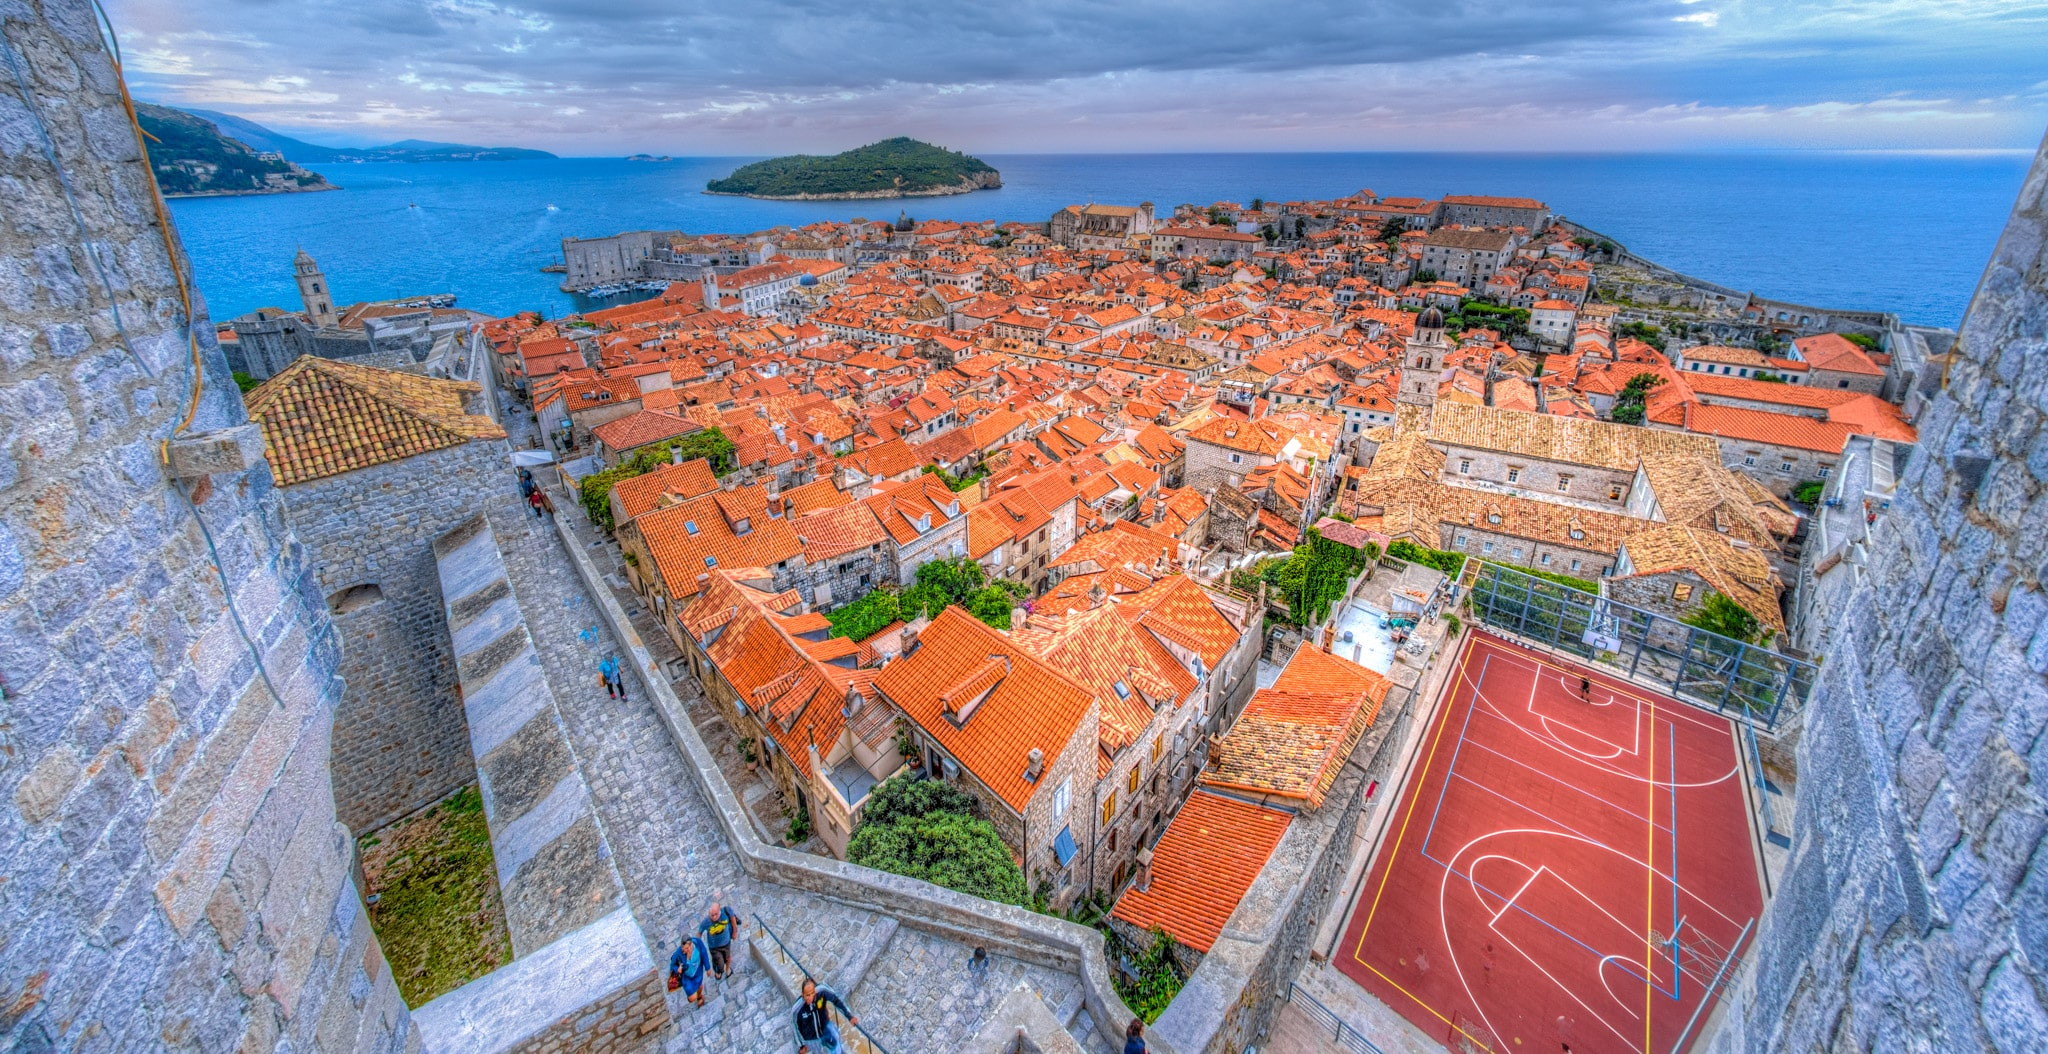 Looking across Dubrovnik Old Town from the Minceta Tower to the island of Lokrum with a soccer/basketball court in the foreground.